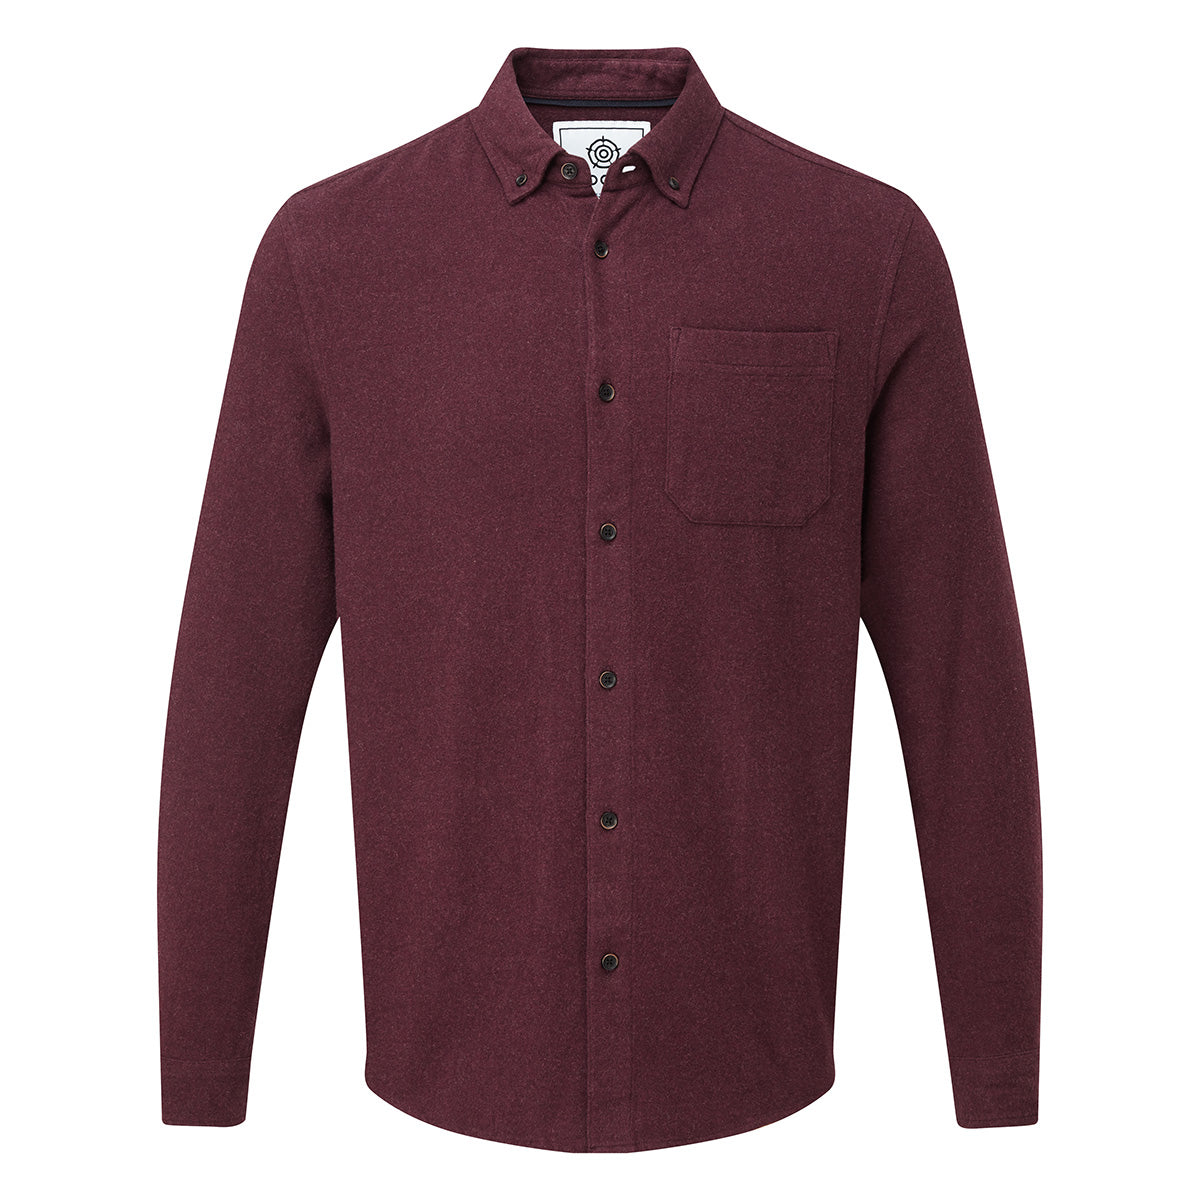 Chester Mens Long Sleeve Plain Marl Shirt - Deep Port Marl image 4